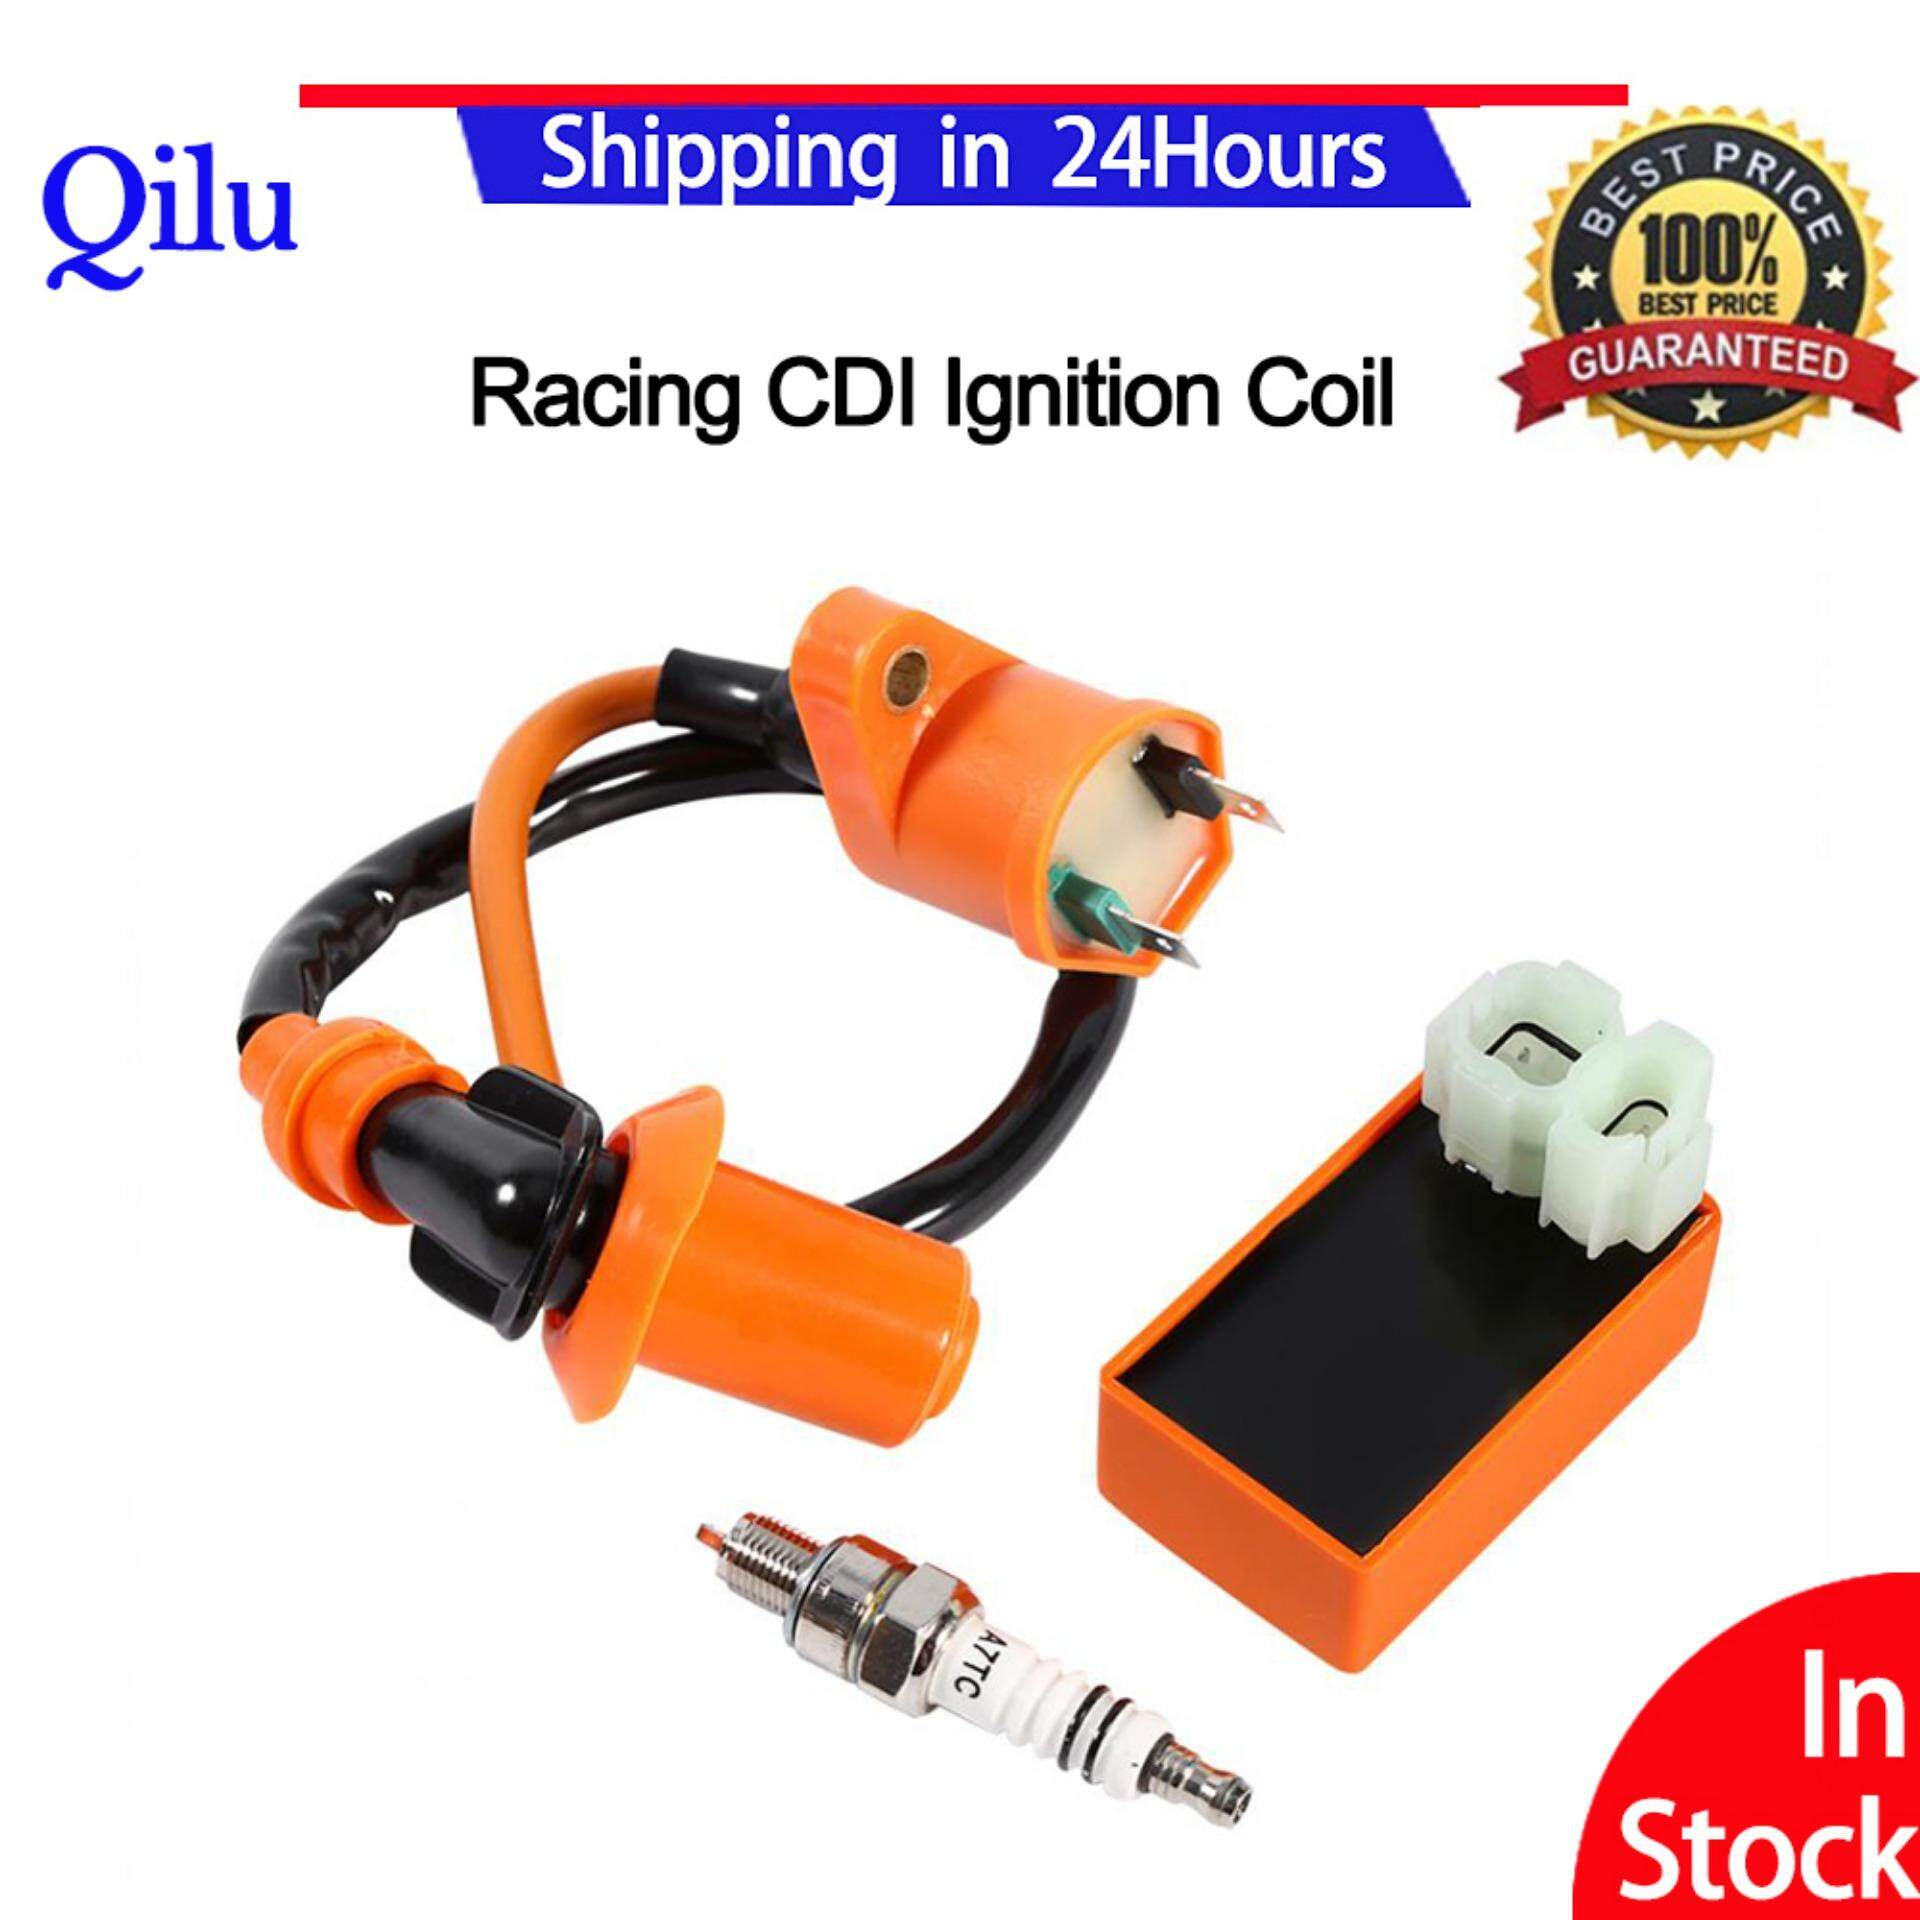 New Racing Performance Cdi Ignition Coil Spark Plug For Gy6 50cc 125cc 150cc Atv Scooter Wiring